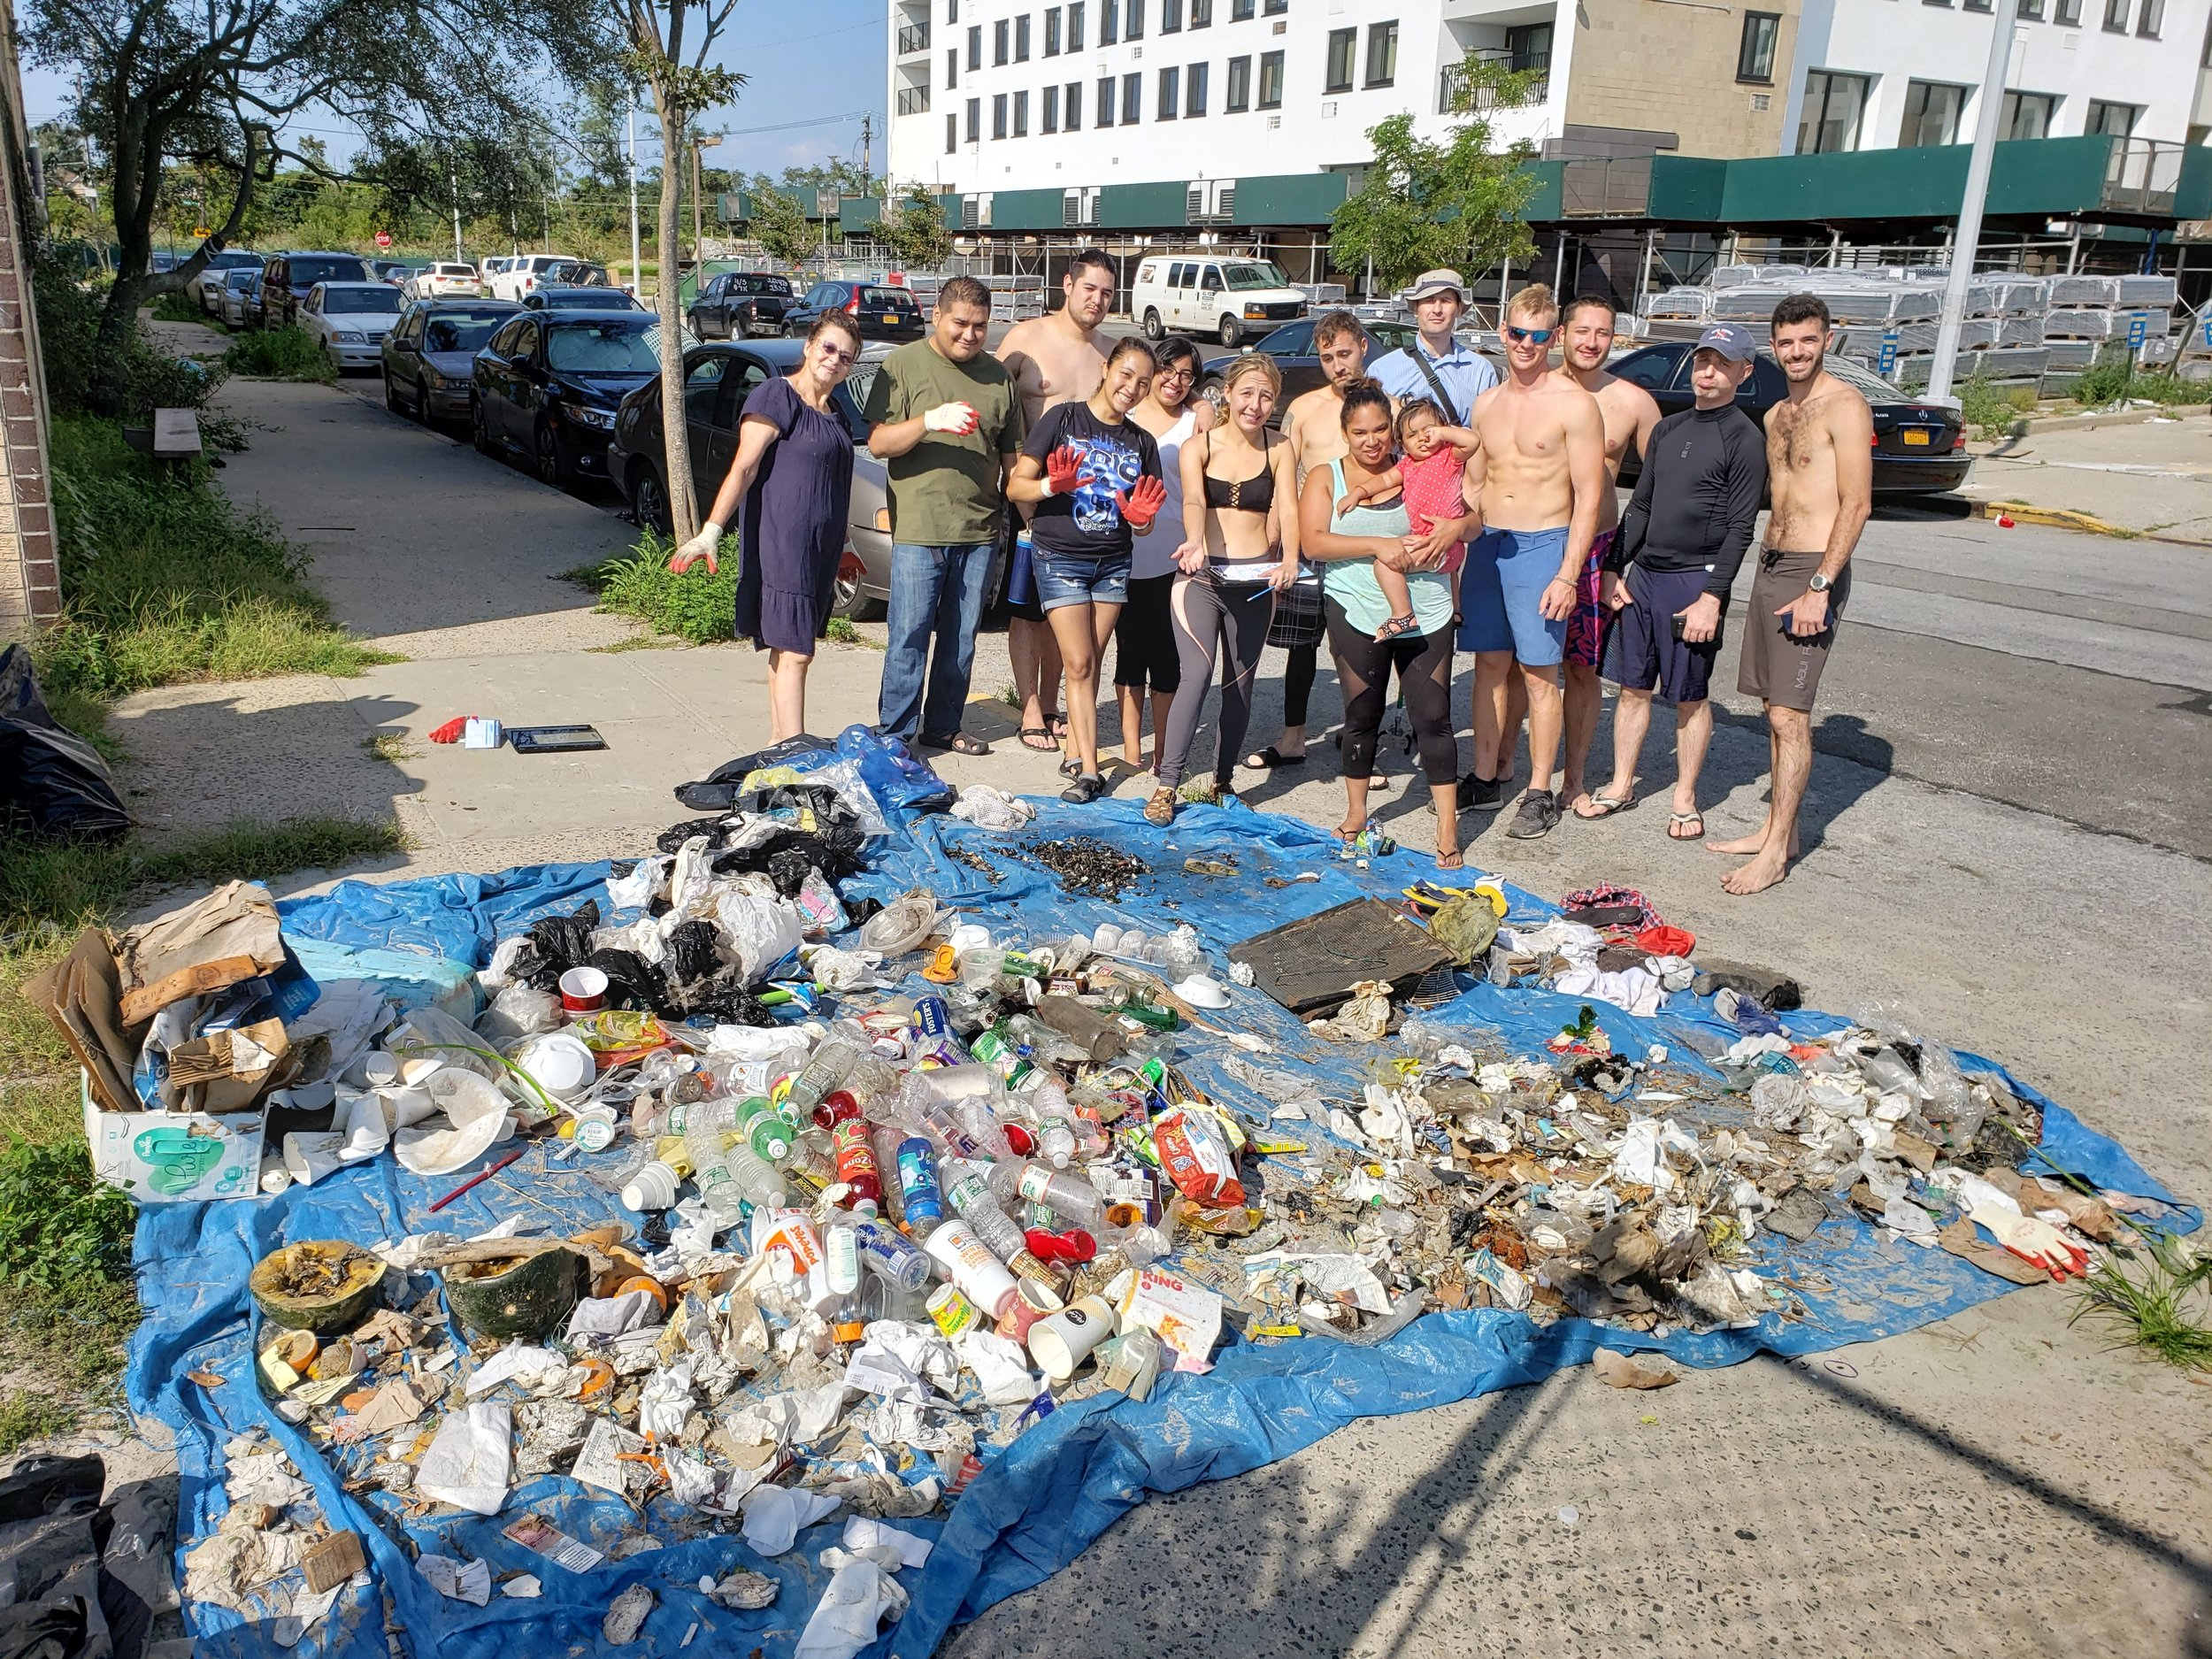 The next cleanup is Saturday, July 27th